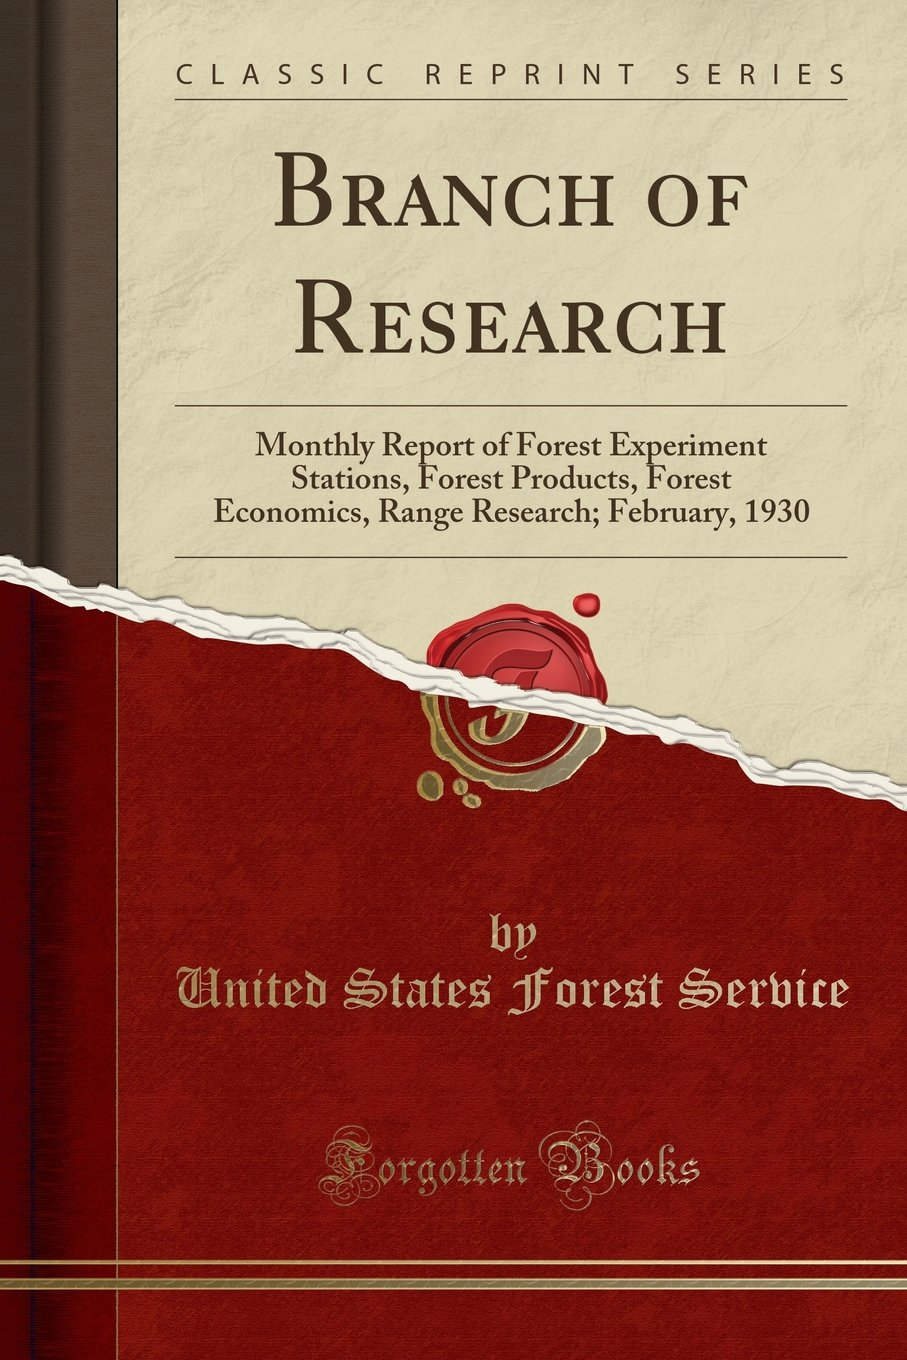 Download Branch of Research: Monthly Report of Forest Experiment Stations, Forest Products, Forest Economics, Range Research; February, 1930 (Classic Reprint) PDF